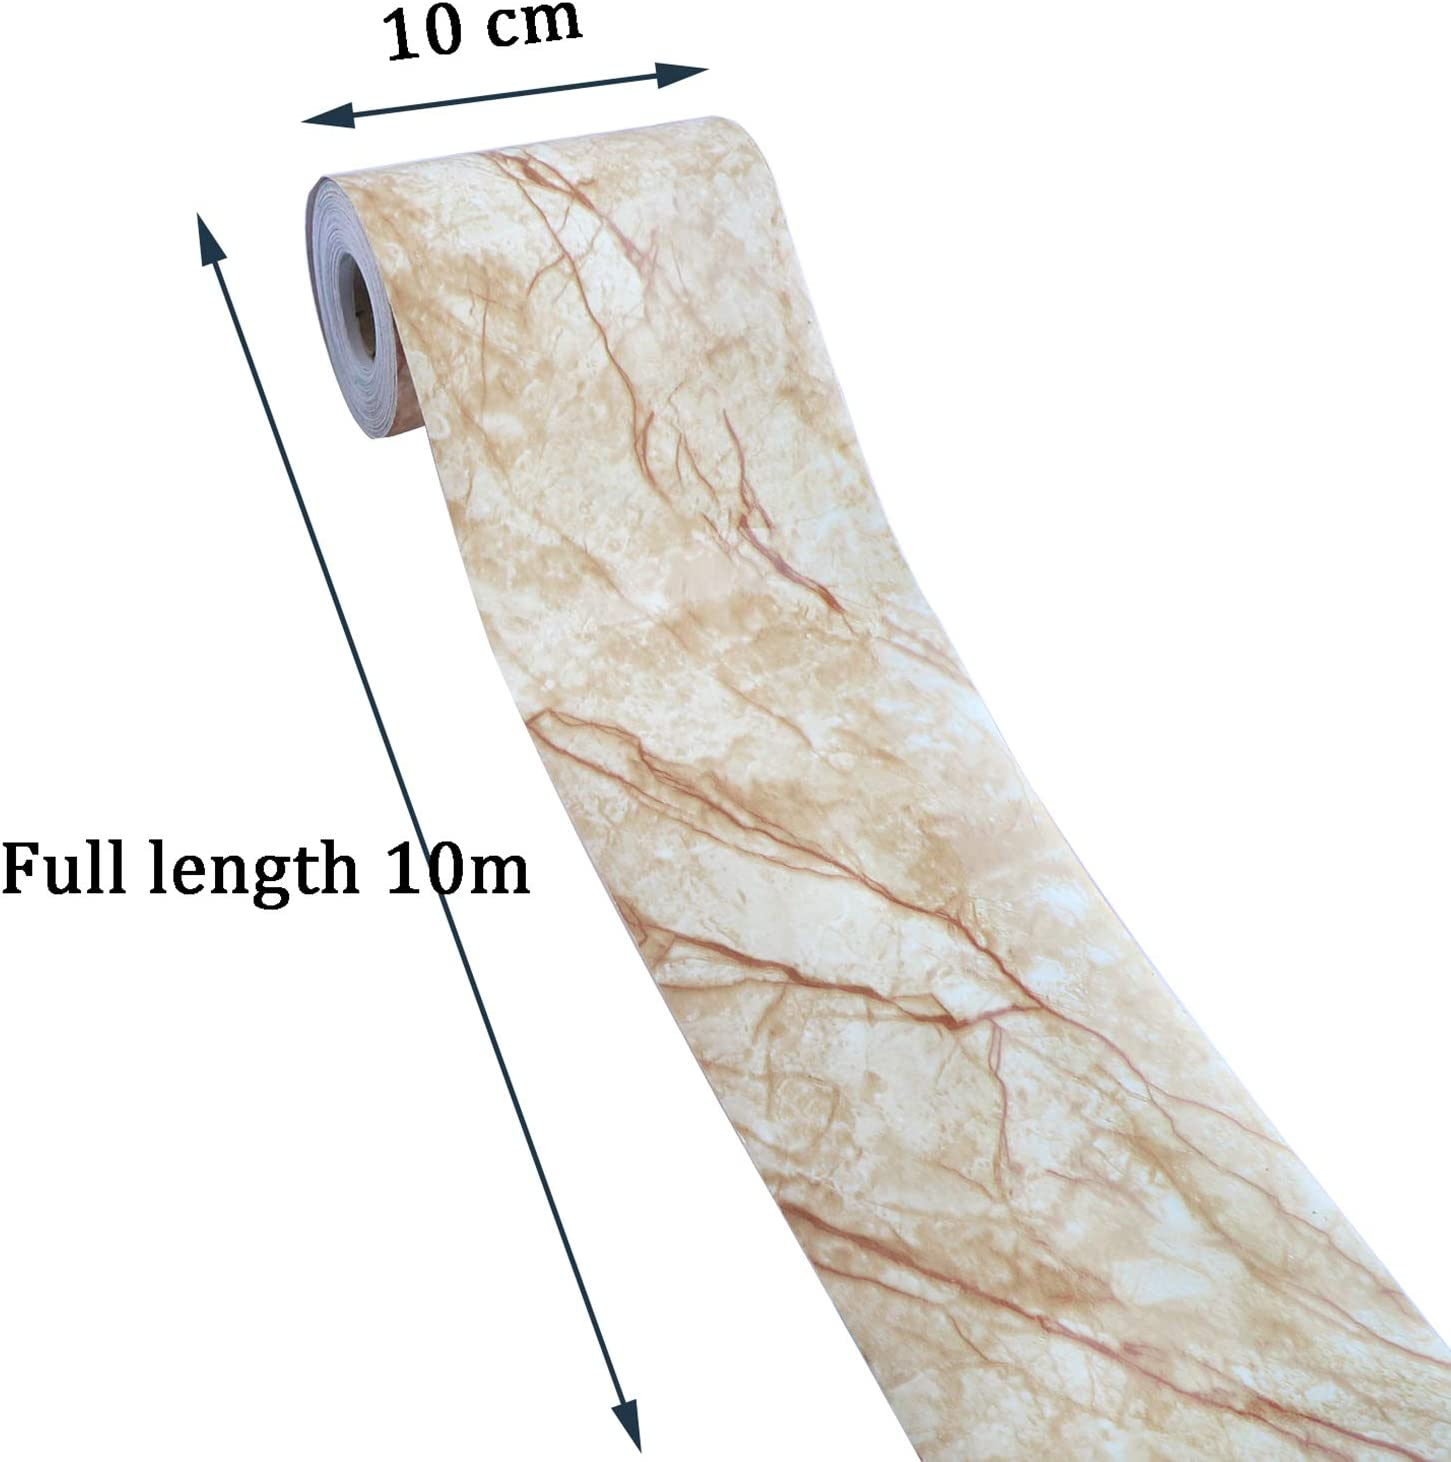 Uoisaiko Marble Wallpaper Borders Self Adhesive Wall Borders Peel And Stick Border For Wall Covering Borders